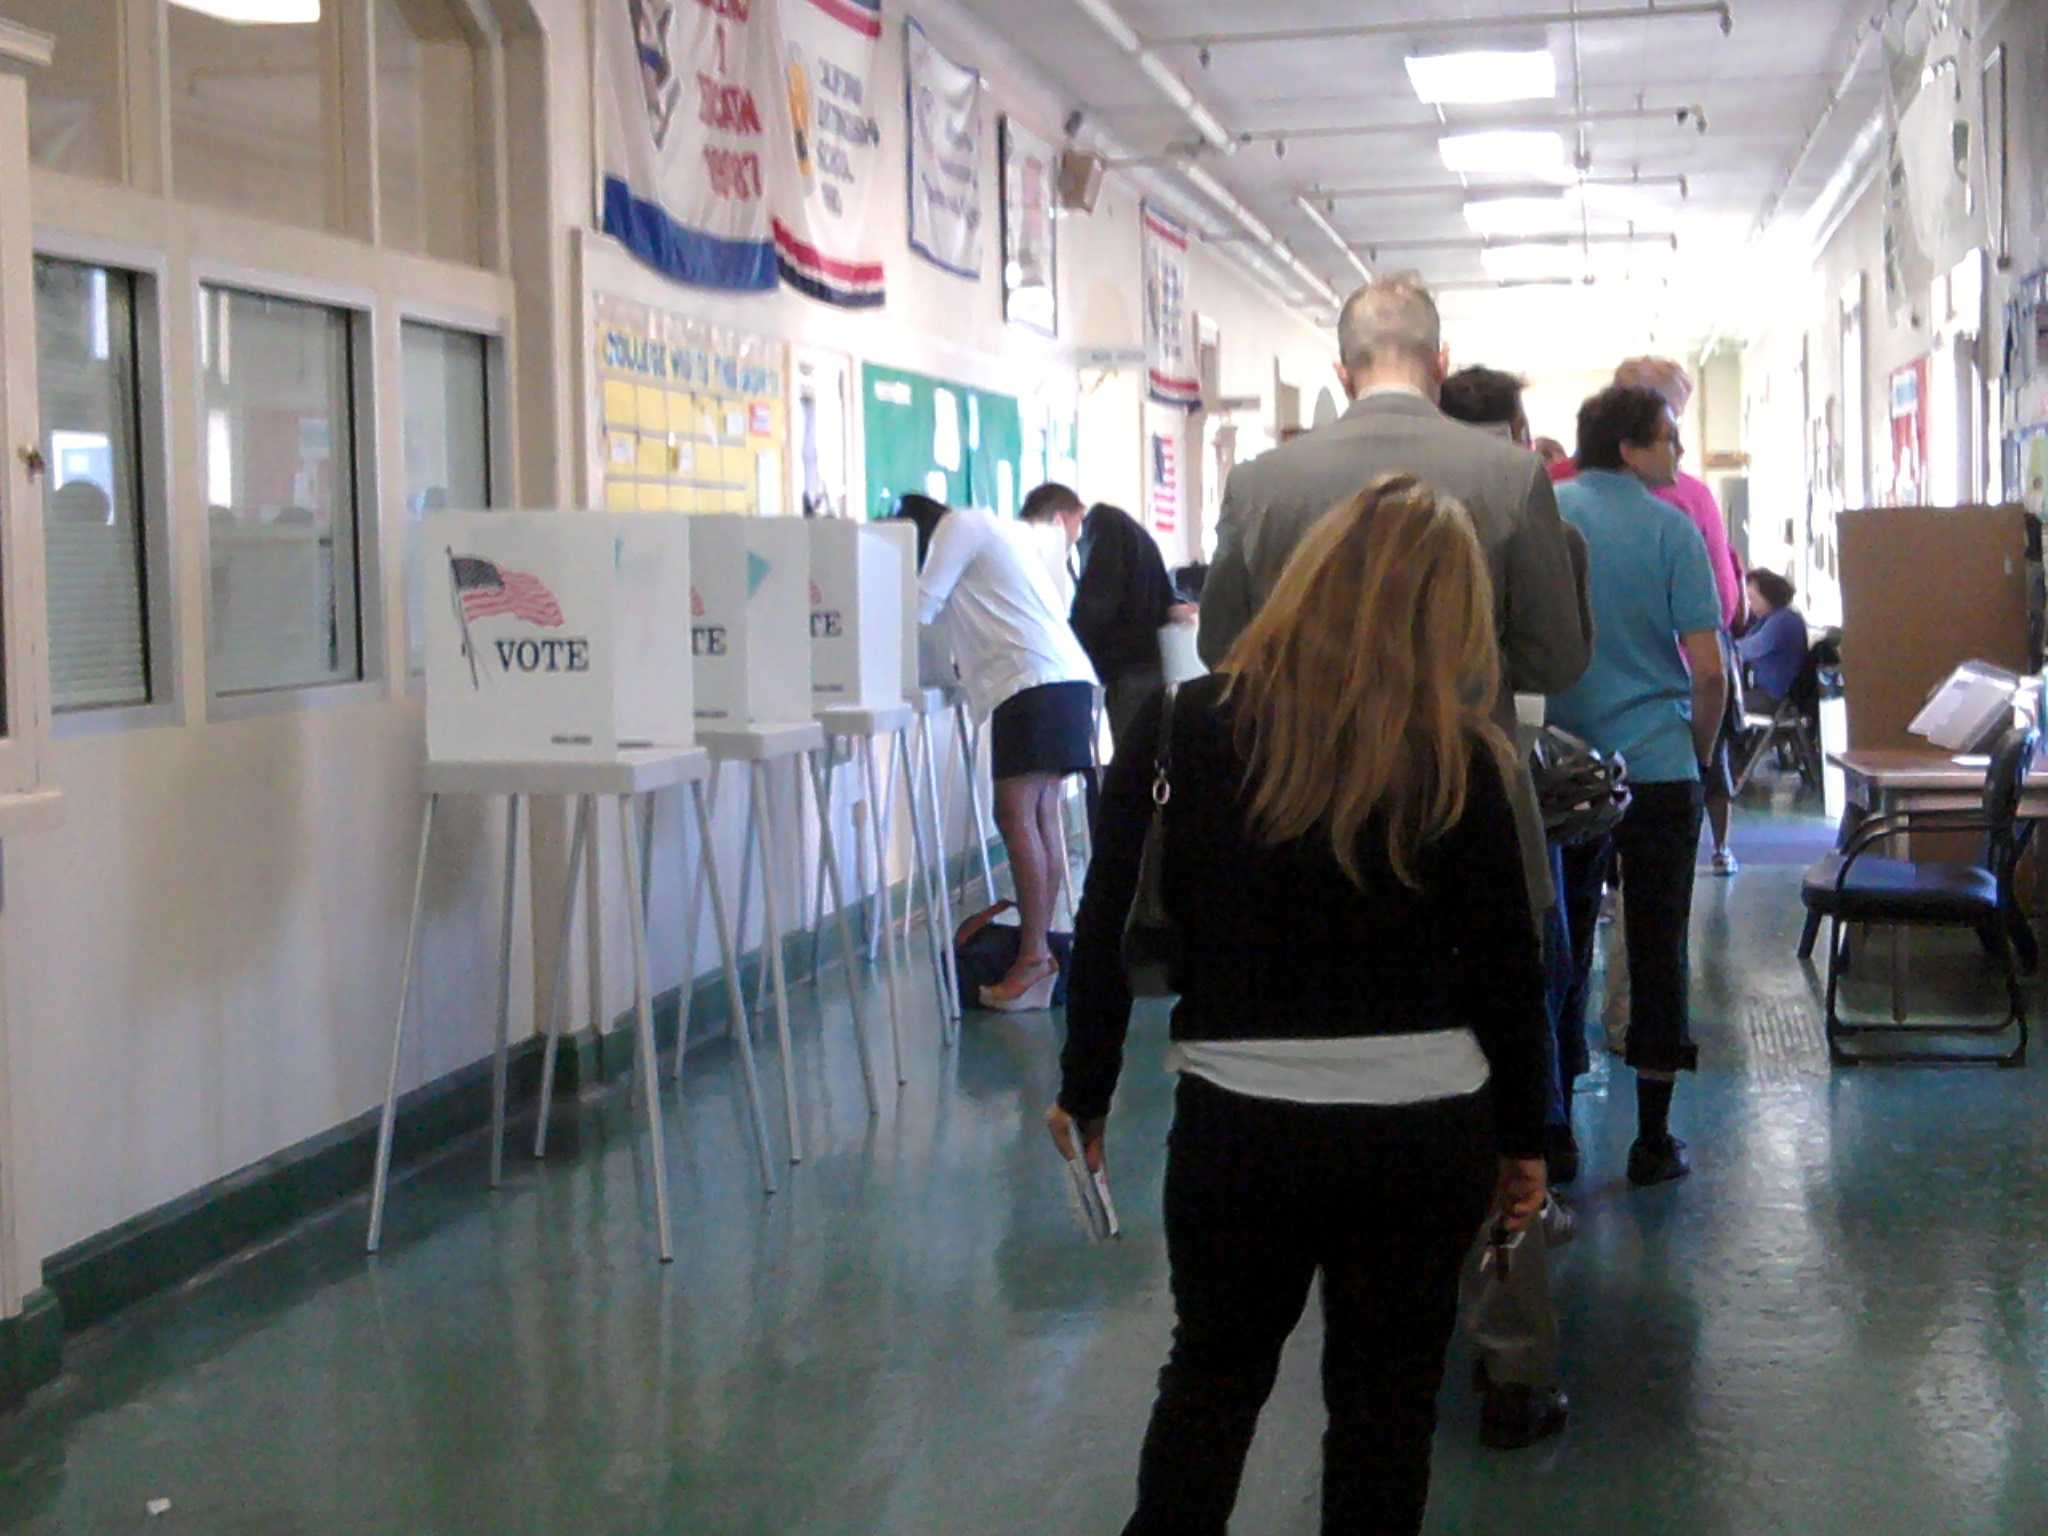 Voters wait in line inside Palo Alto High School's Tower Building to cast their vote. Photo by Phoebe So.